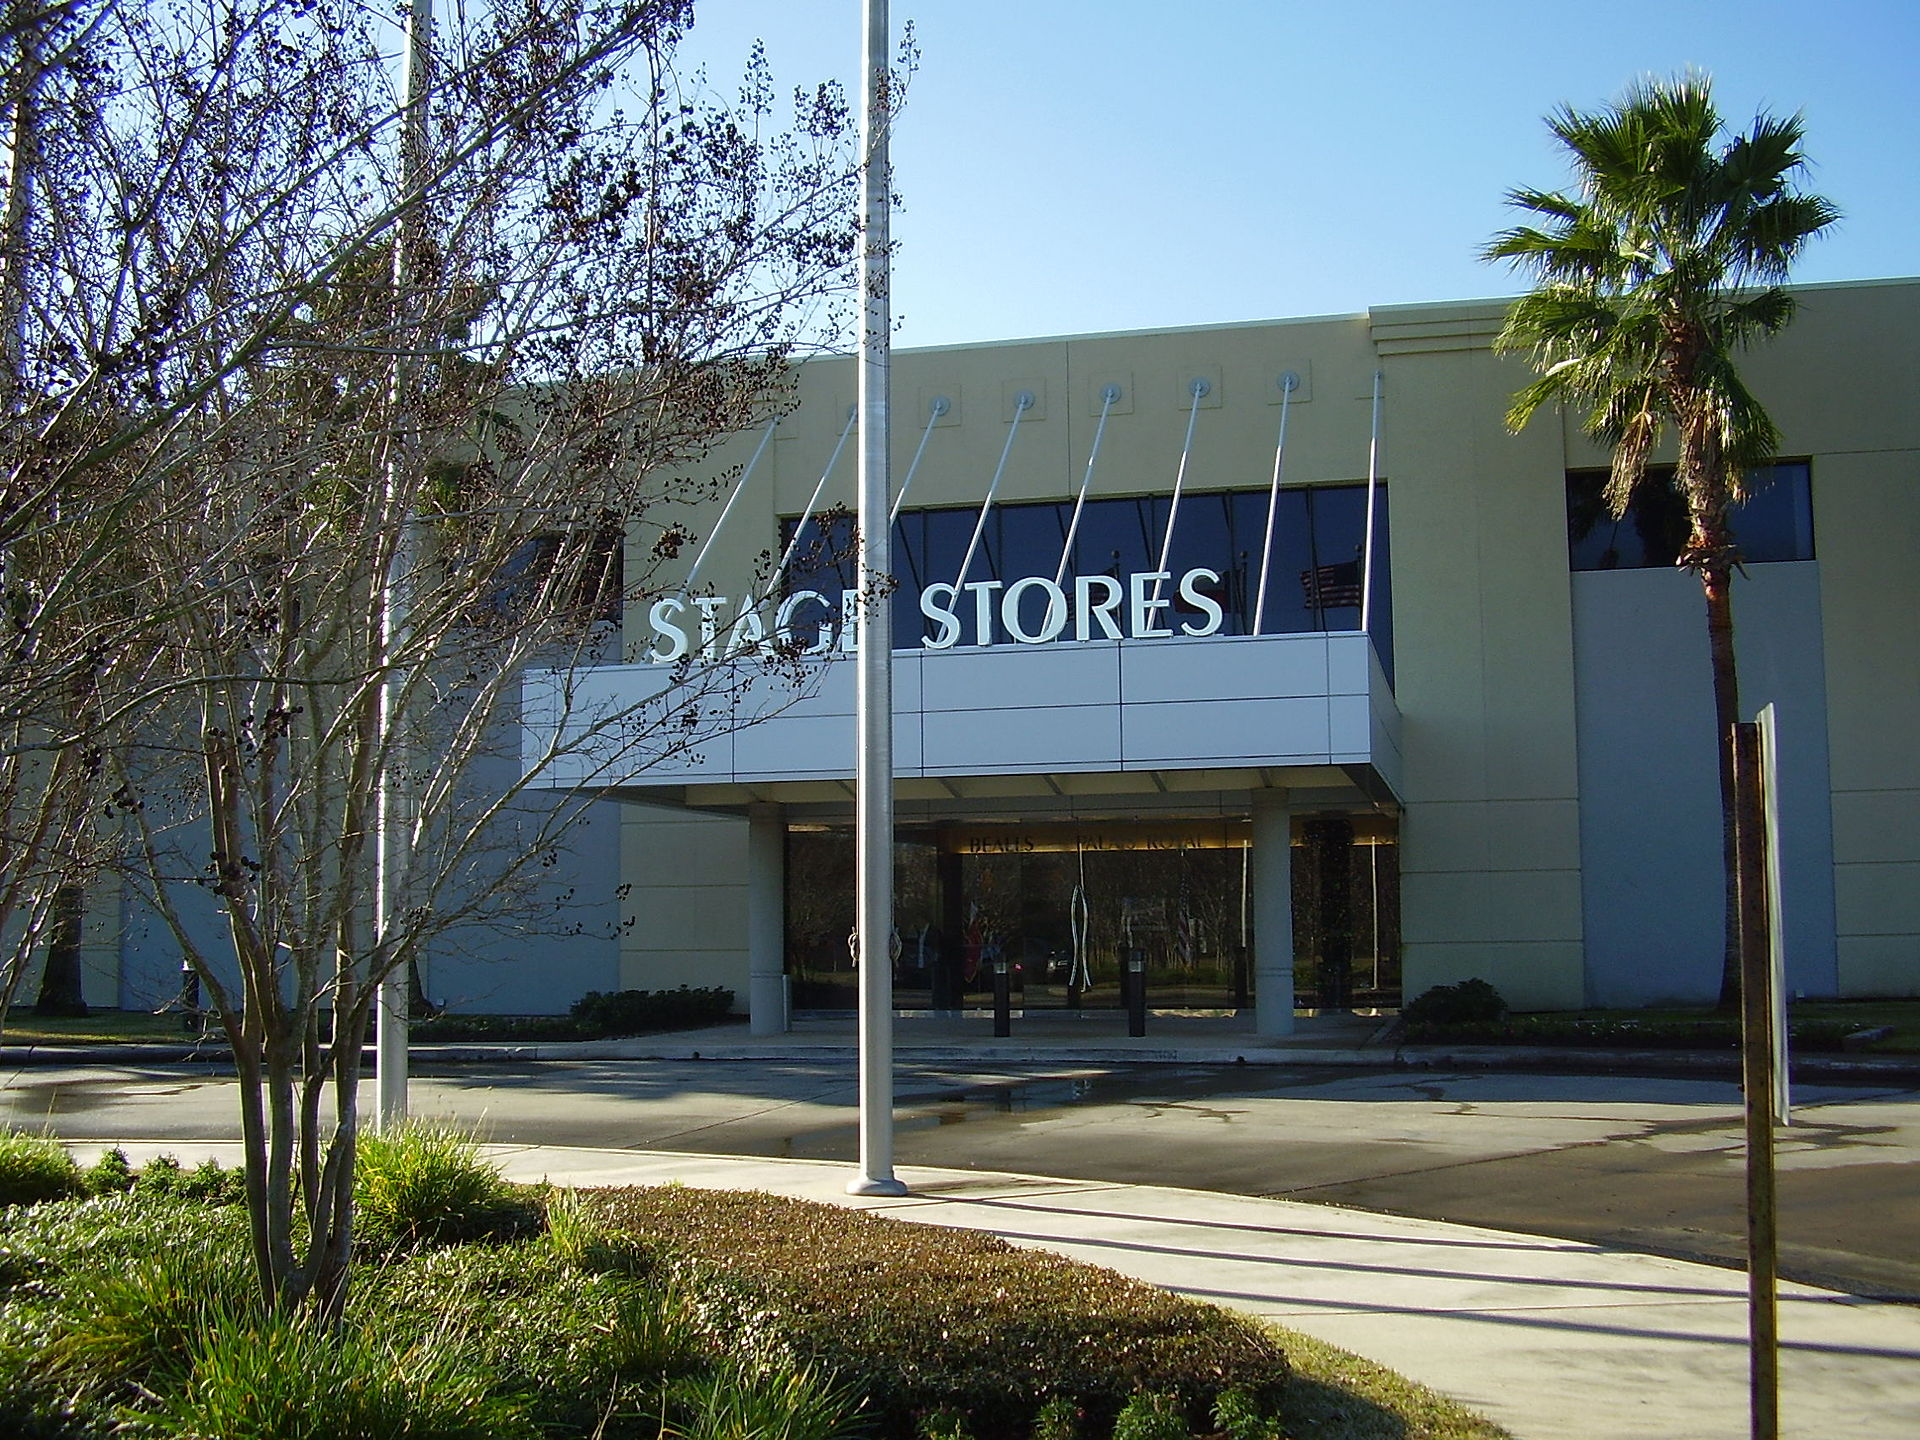 Stage clothes store